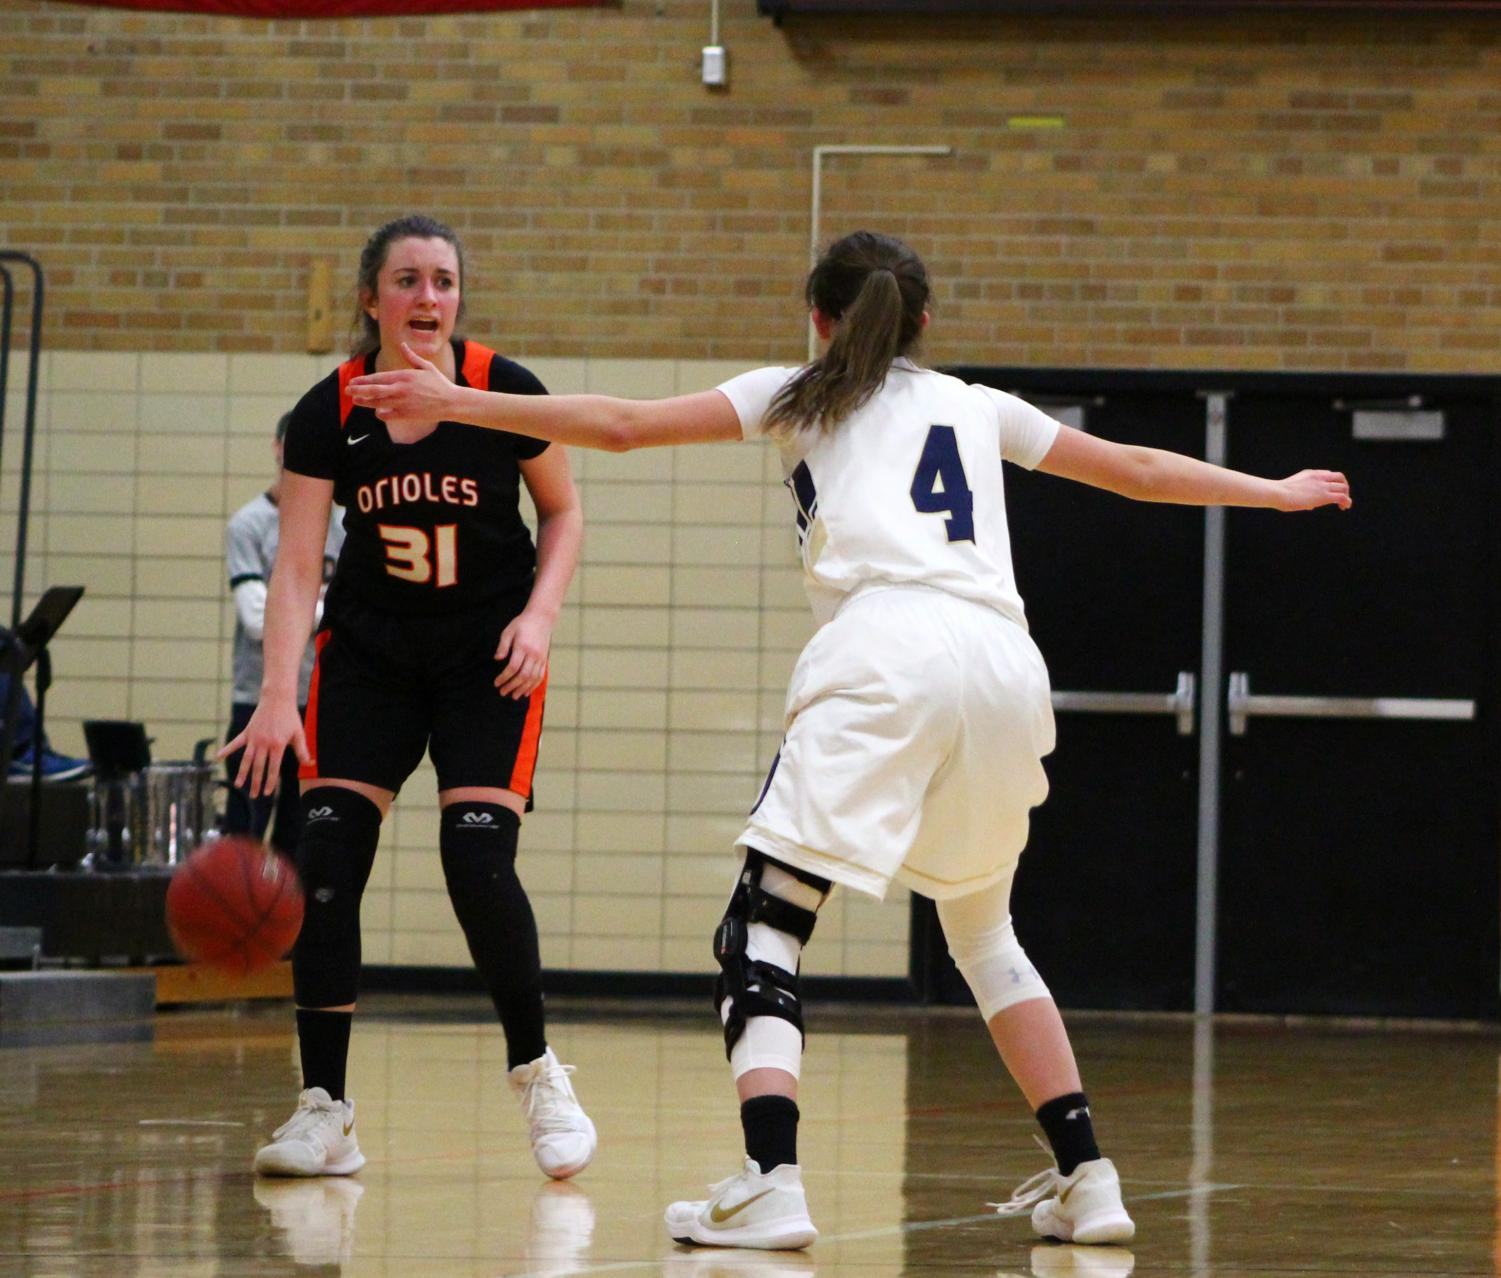 Sophomore Shayla Miller scans the court for open team mates while dribbling down the court on Feb 5. The Orioles lost 58-63 to Chanhassen.